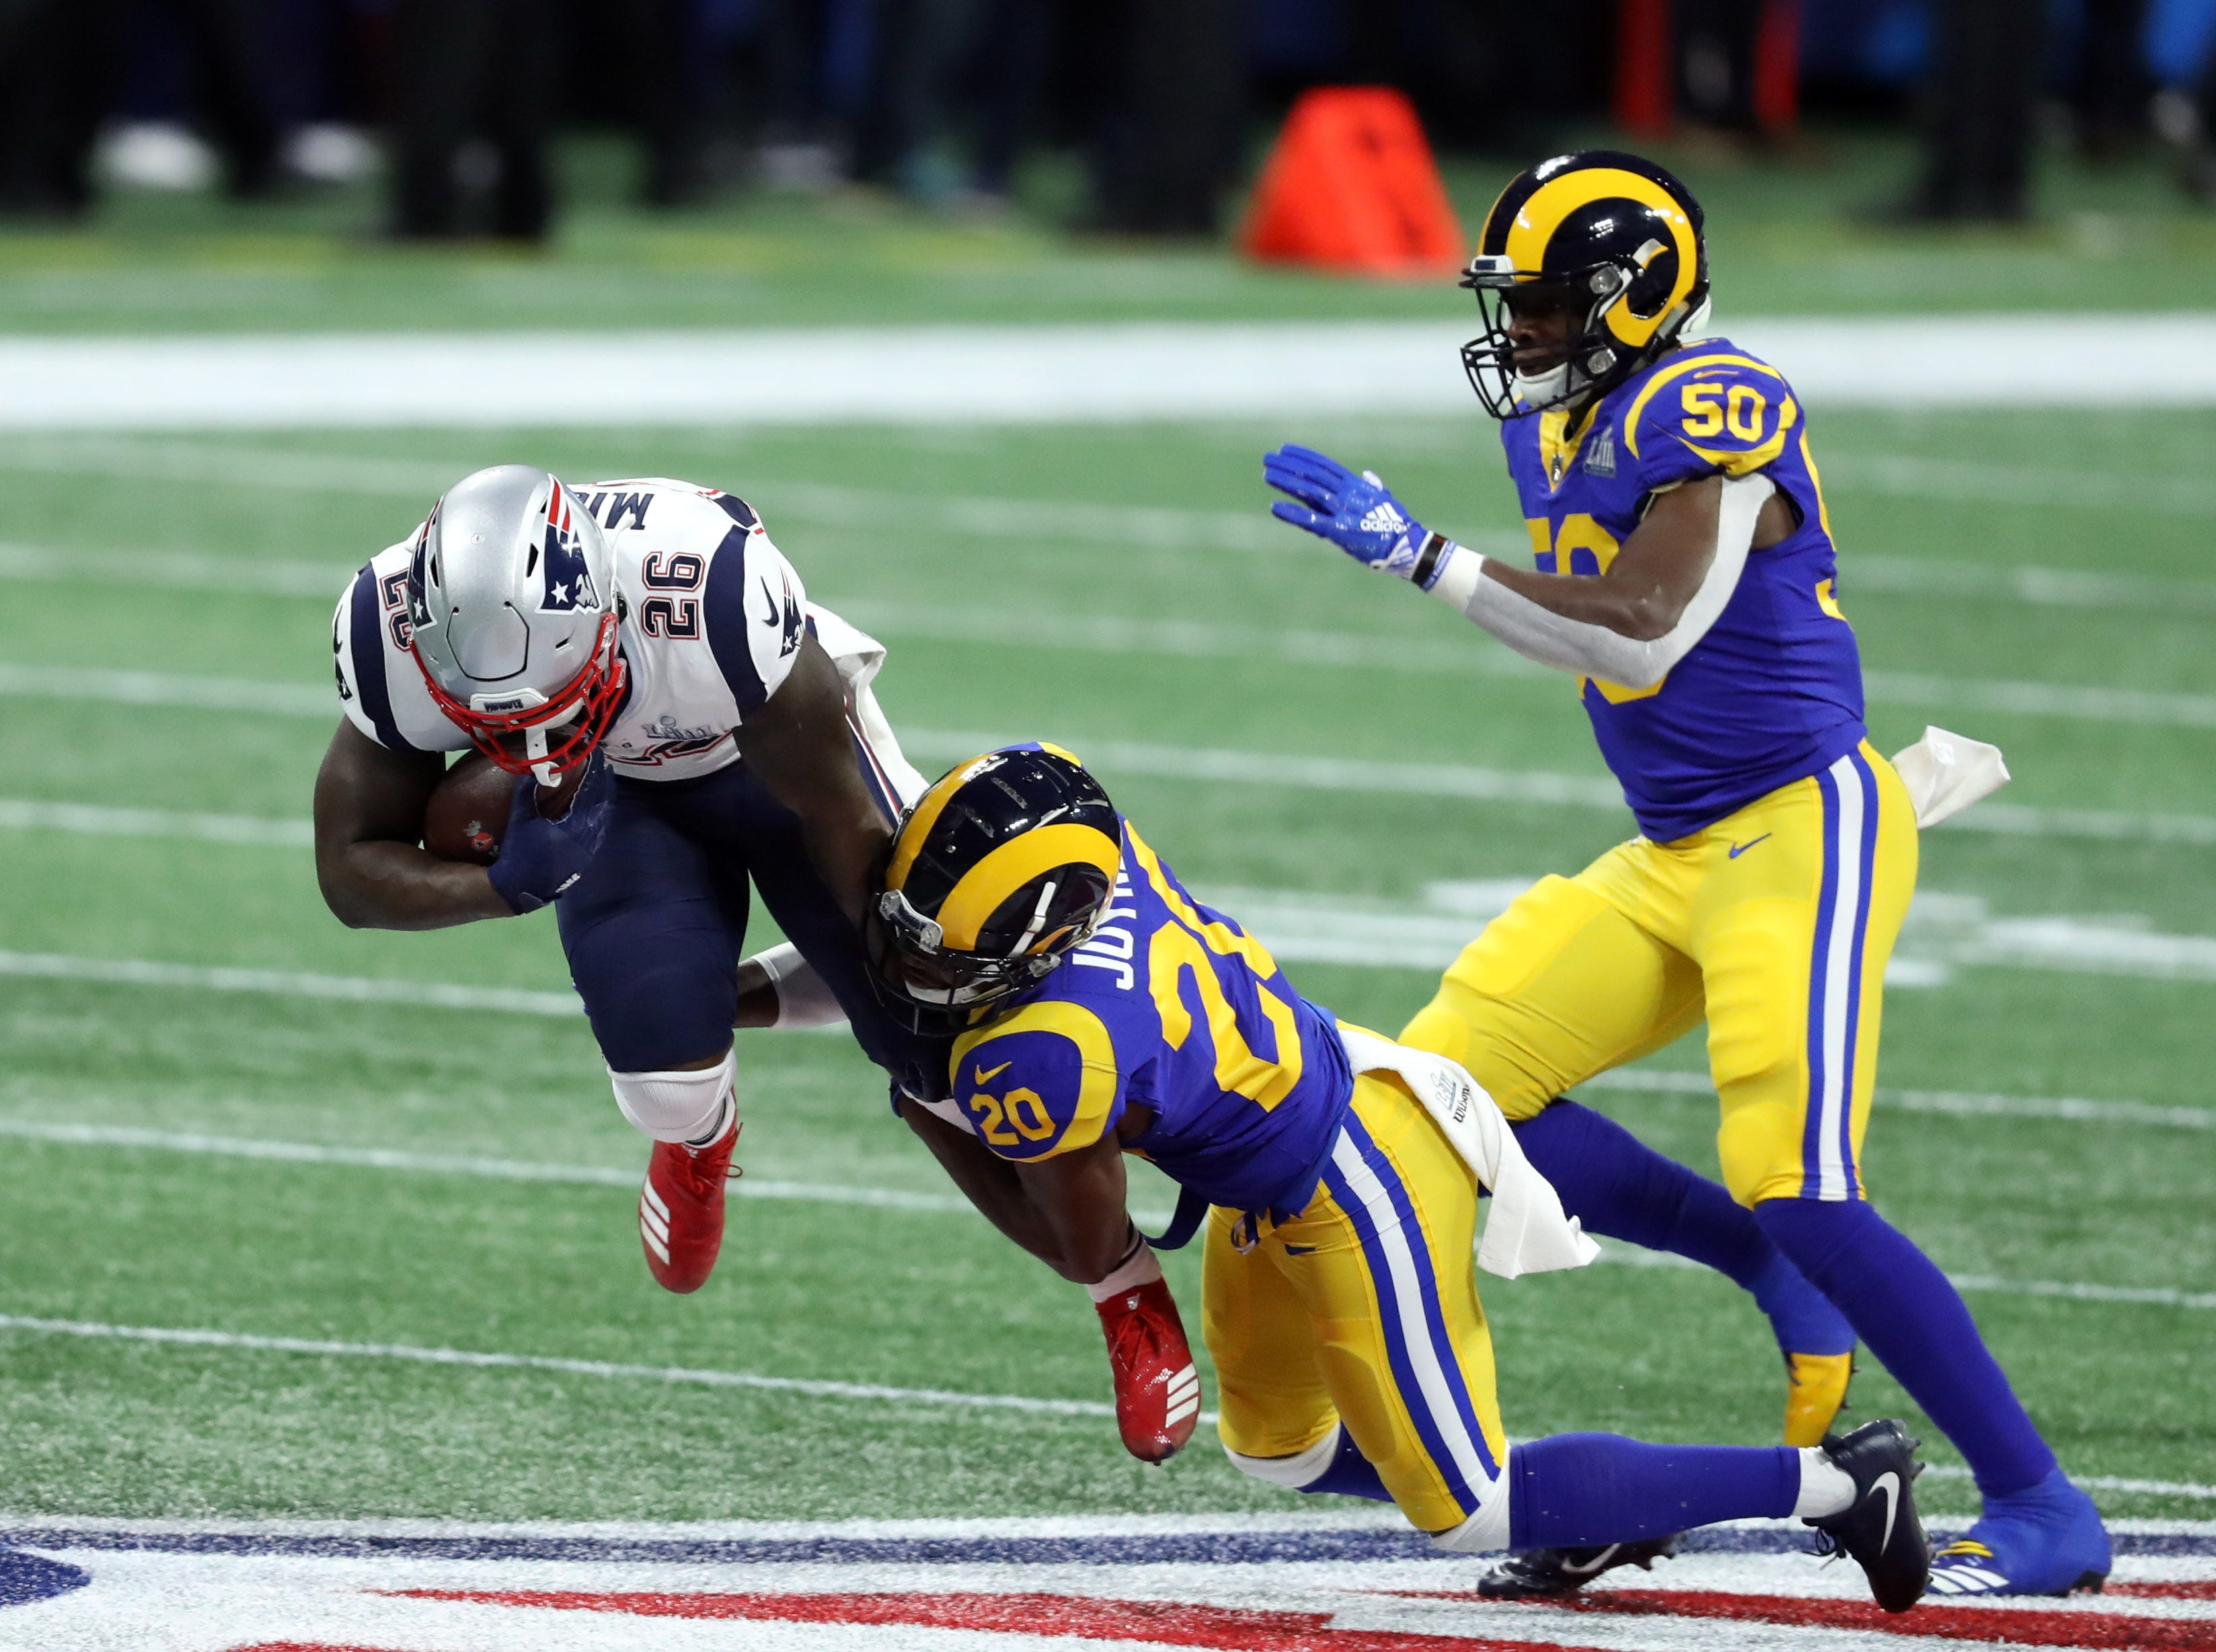 Los Angeles Rams free safety Lamarcus Joyner tackles New England Patriots running back Sony Michel (26) during the first quarter of Super Bowl LIII.